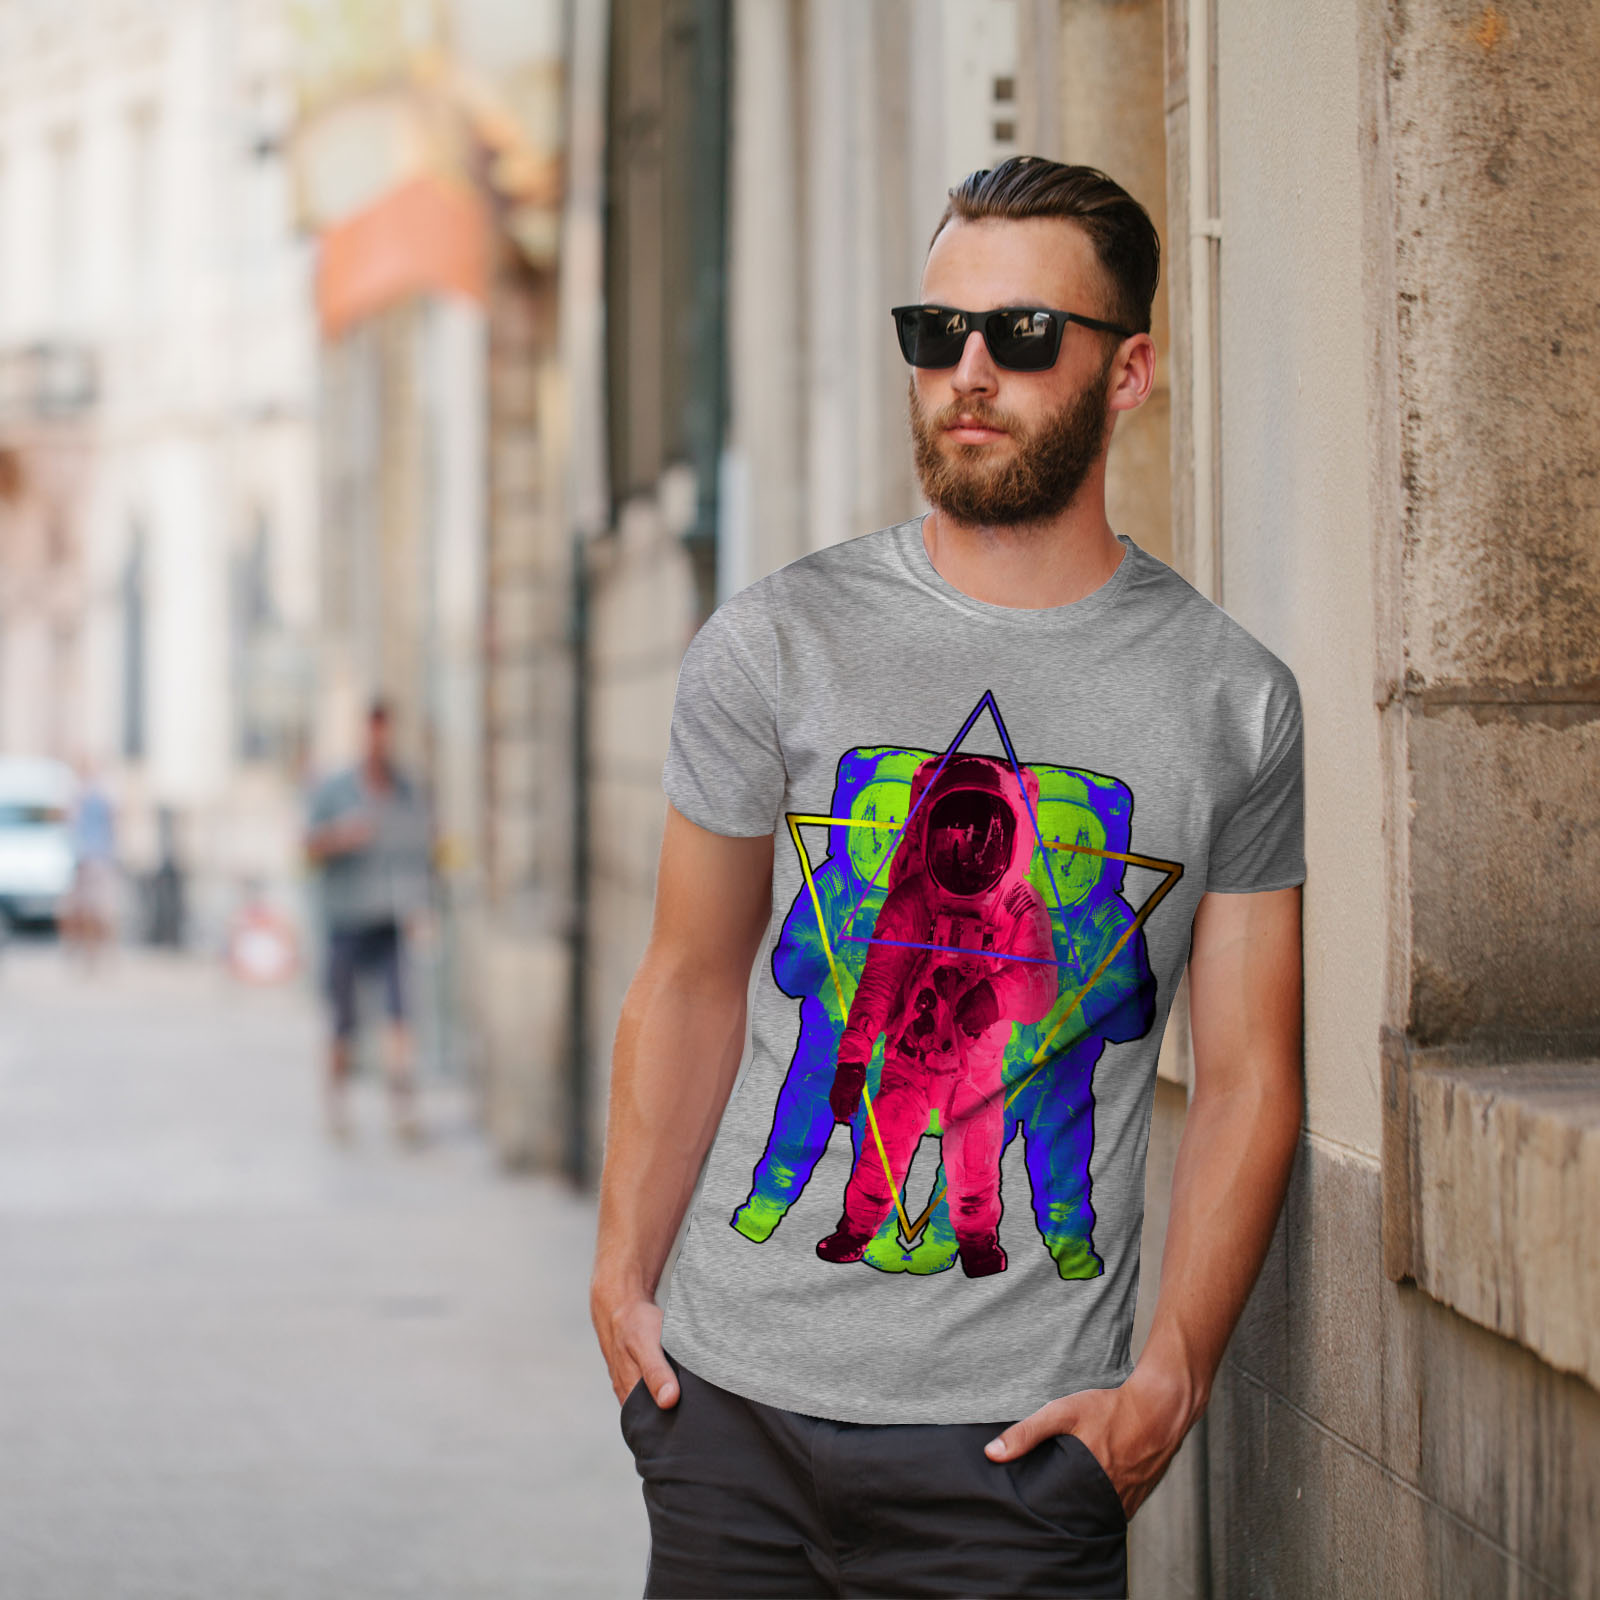 Wellcoda-Psychedelic-Astronaut-Mens-T-shirt-Star-Graphic-Design-Printed-Tee thumbnail 17